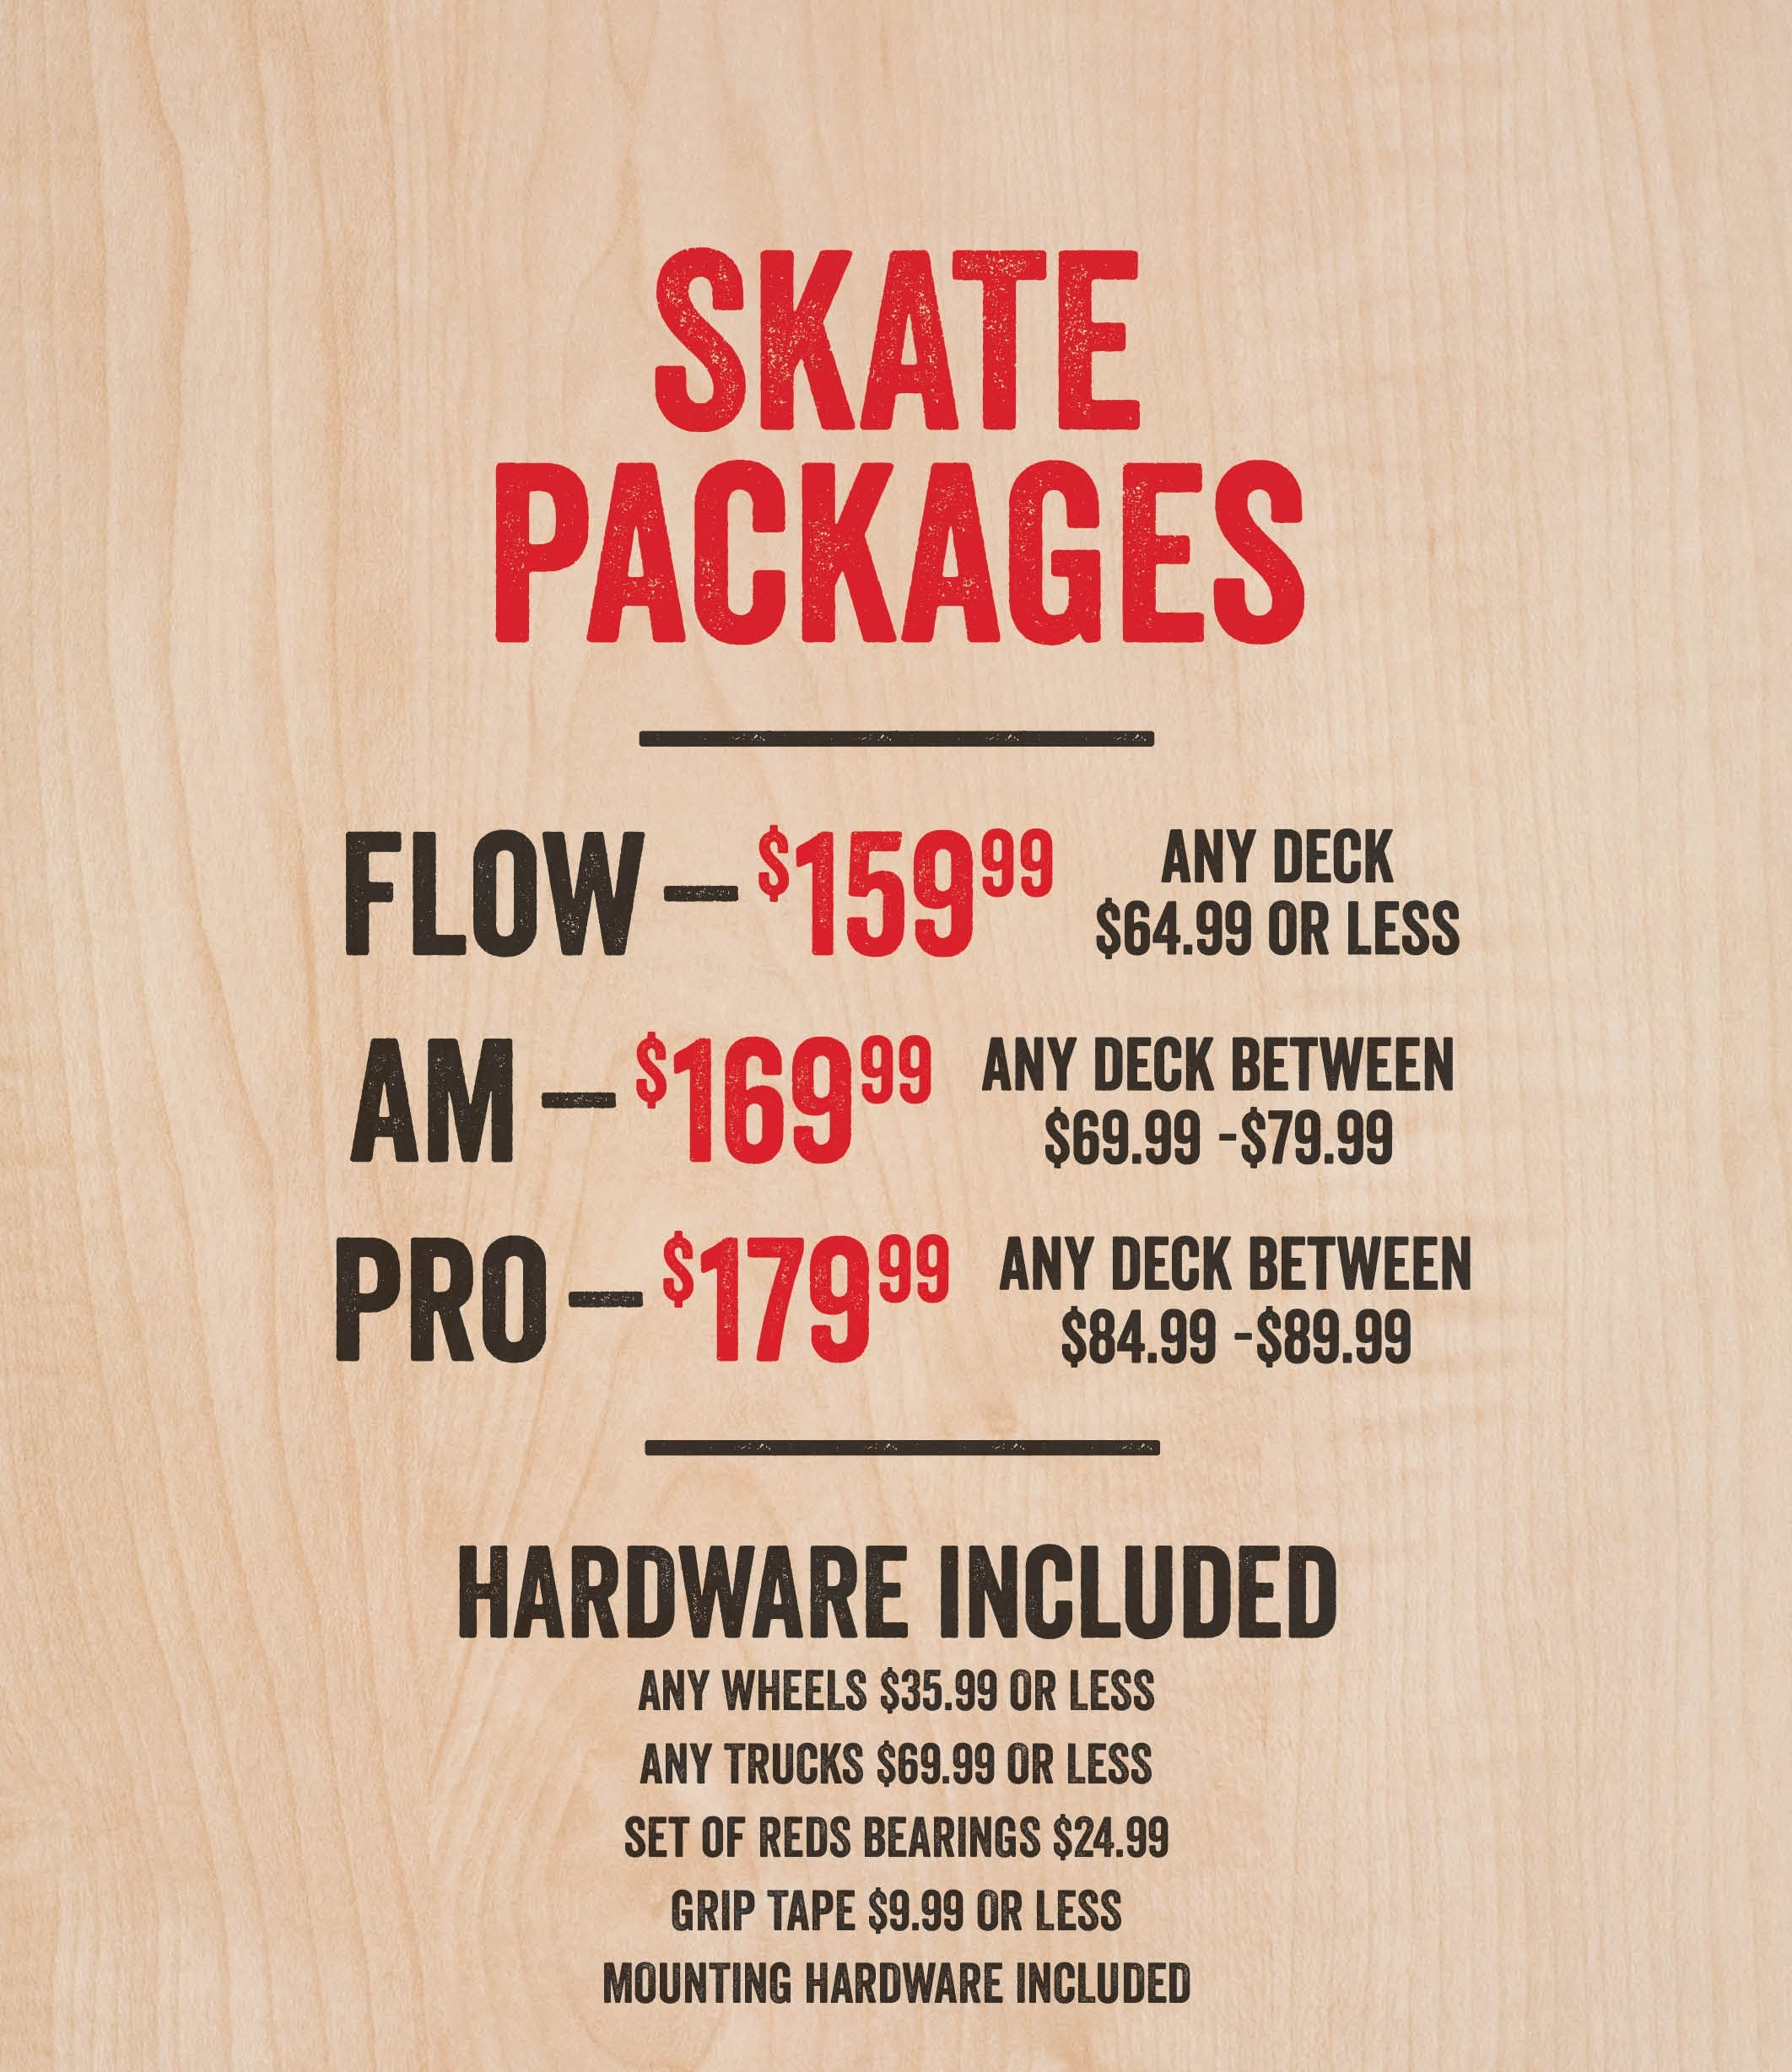 skate packages